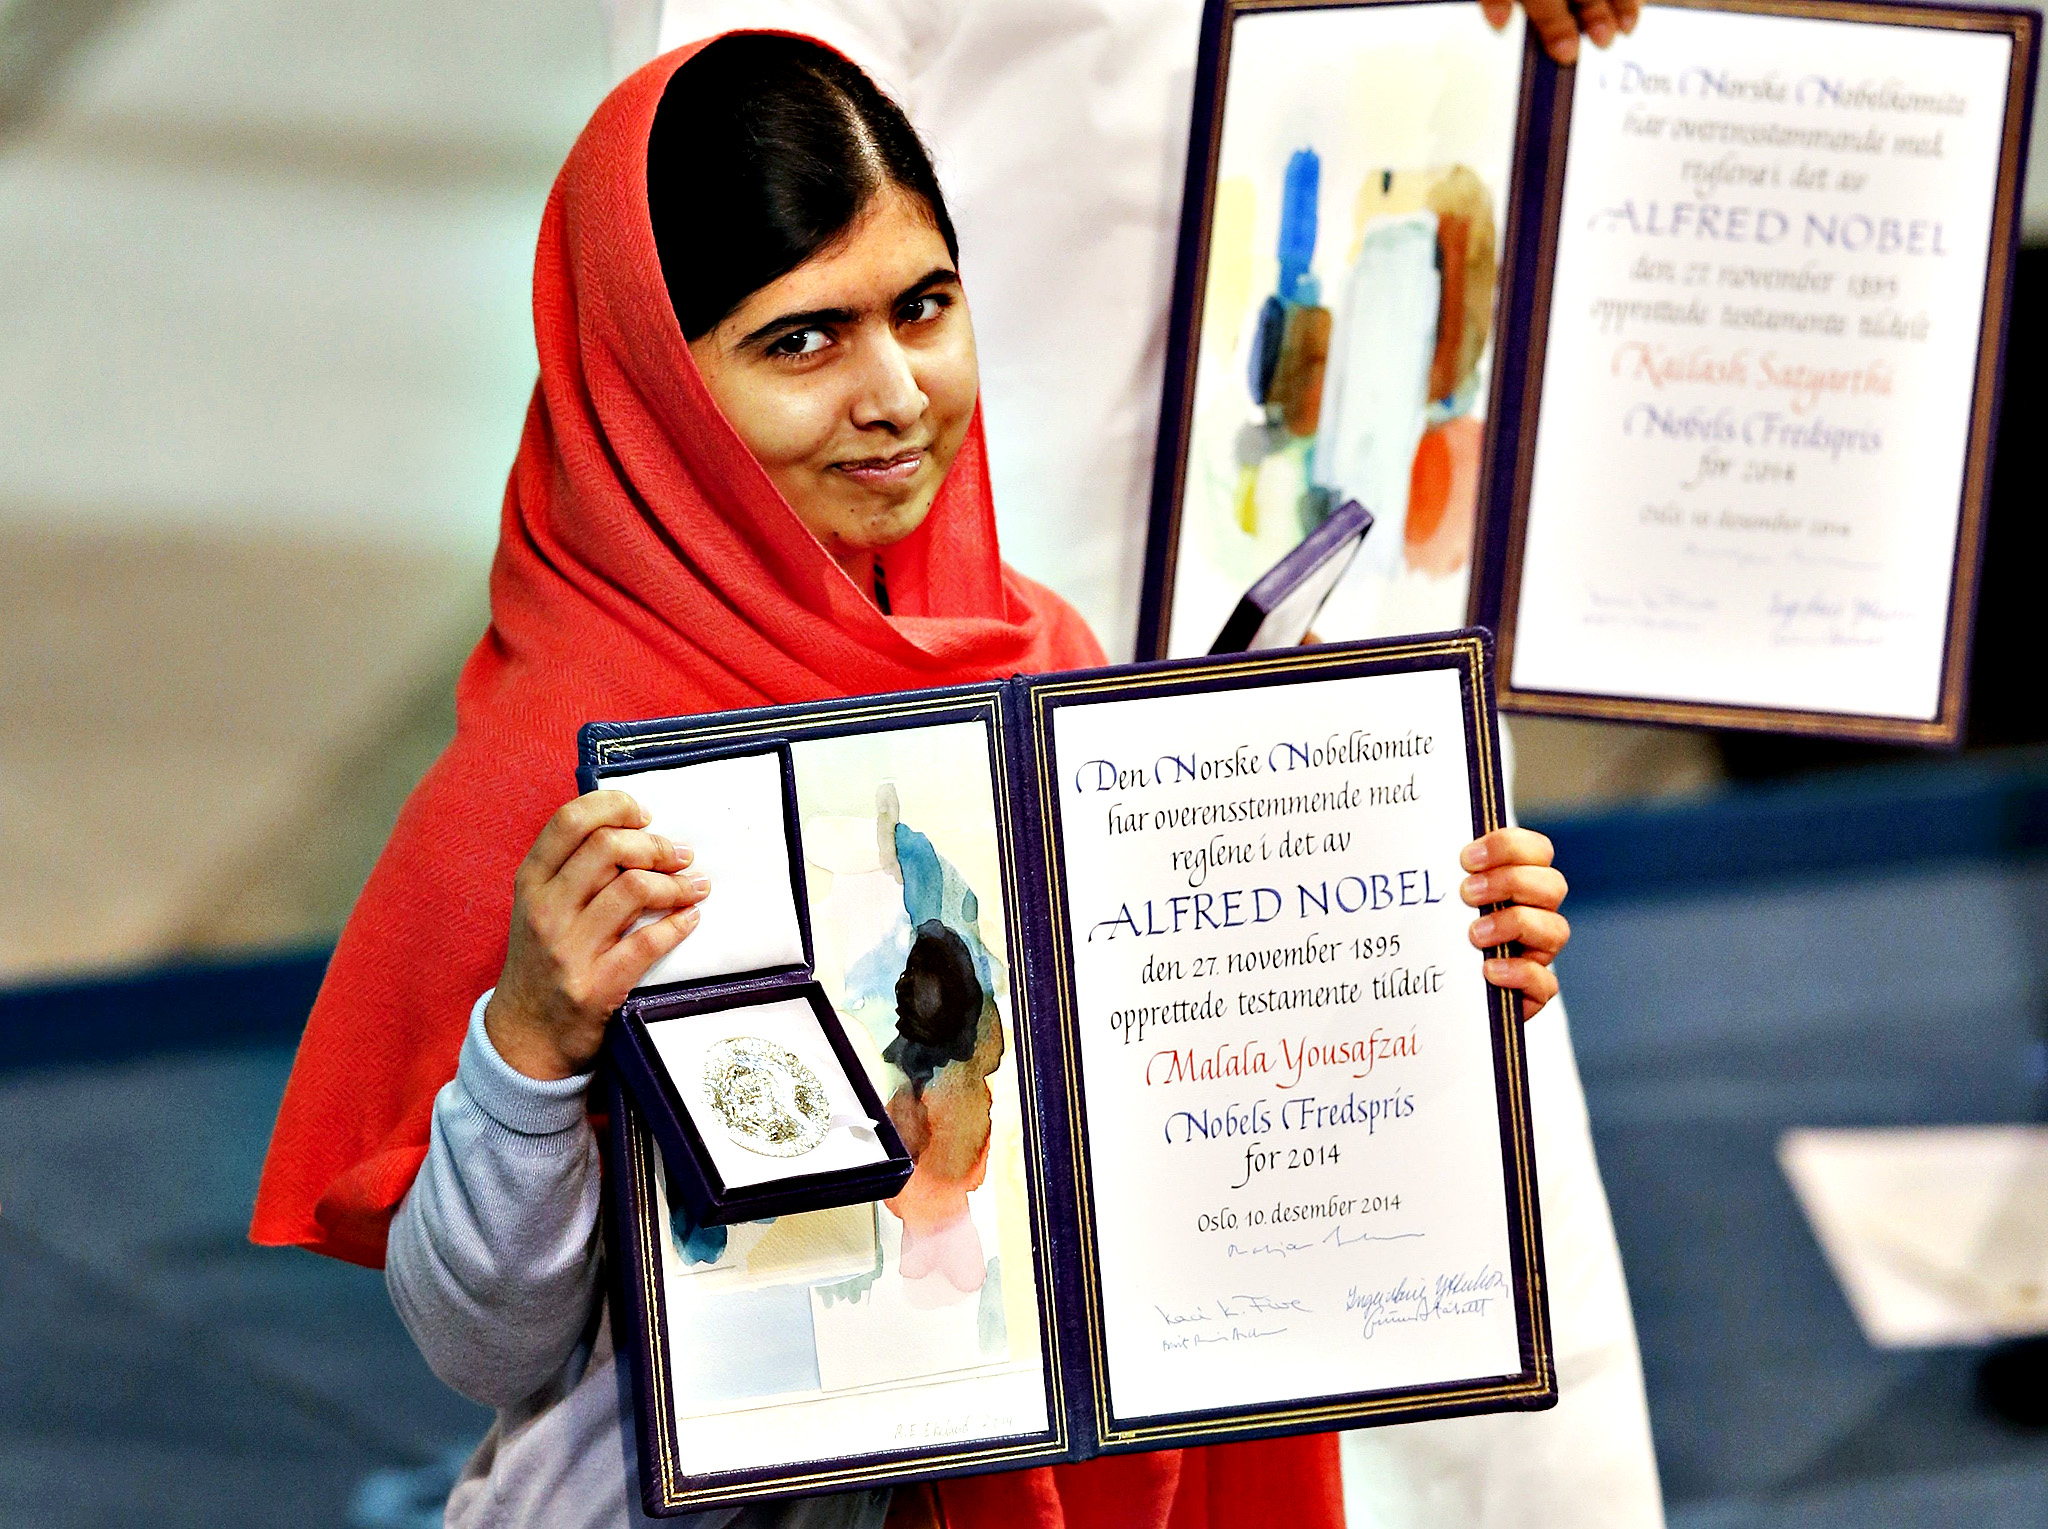 Nobel Peace Prize laureate Malala Yousafzai poses with the medal and the diploma during the Nobel Peace Prize awards ceremony at the City Hall in Oslo December 10, 2014. Pakistani teenager Yousafzai, shot by the Taliban for refusing to quit school, and Indian activist Kailash Satyarthi received their Nobel Peace Prizes on Wednesday after two days of celebration honouring their work for children's rights.